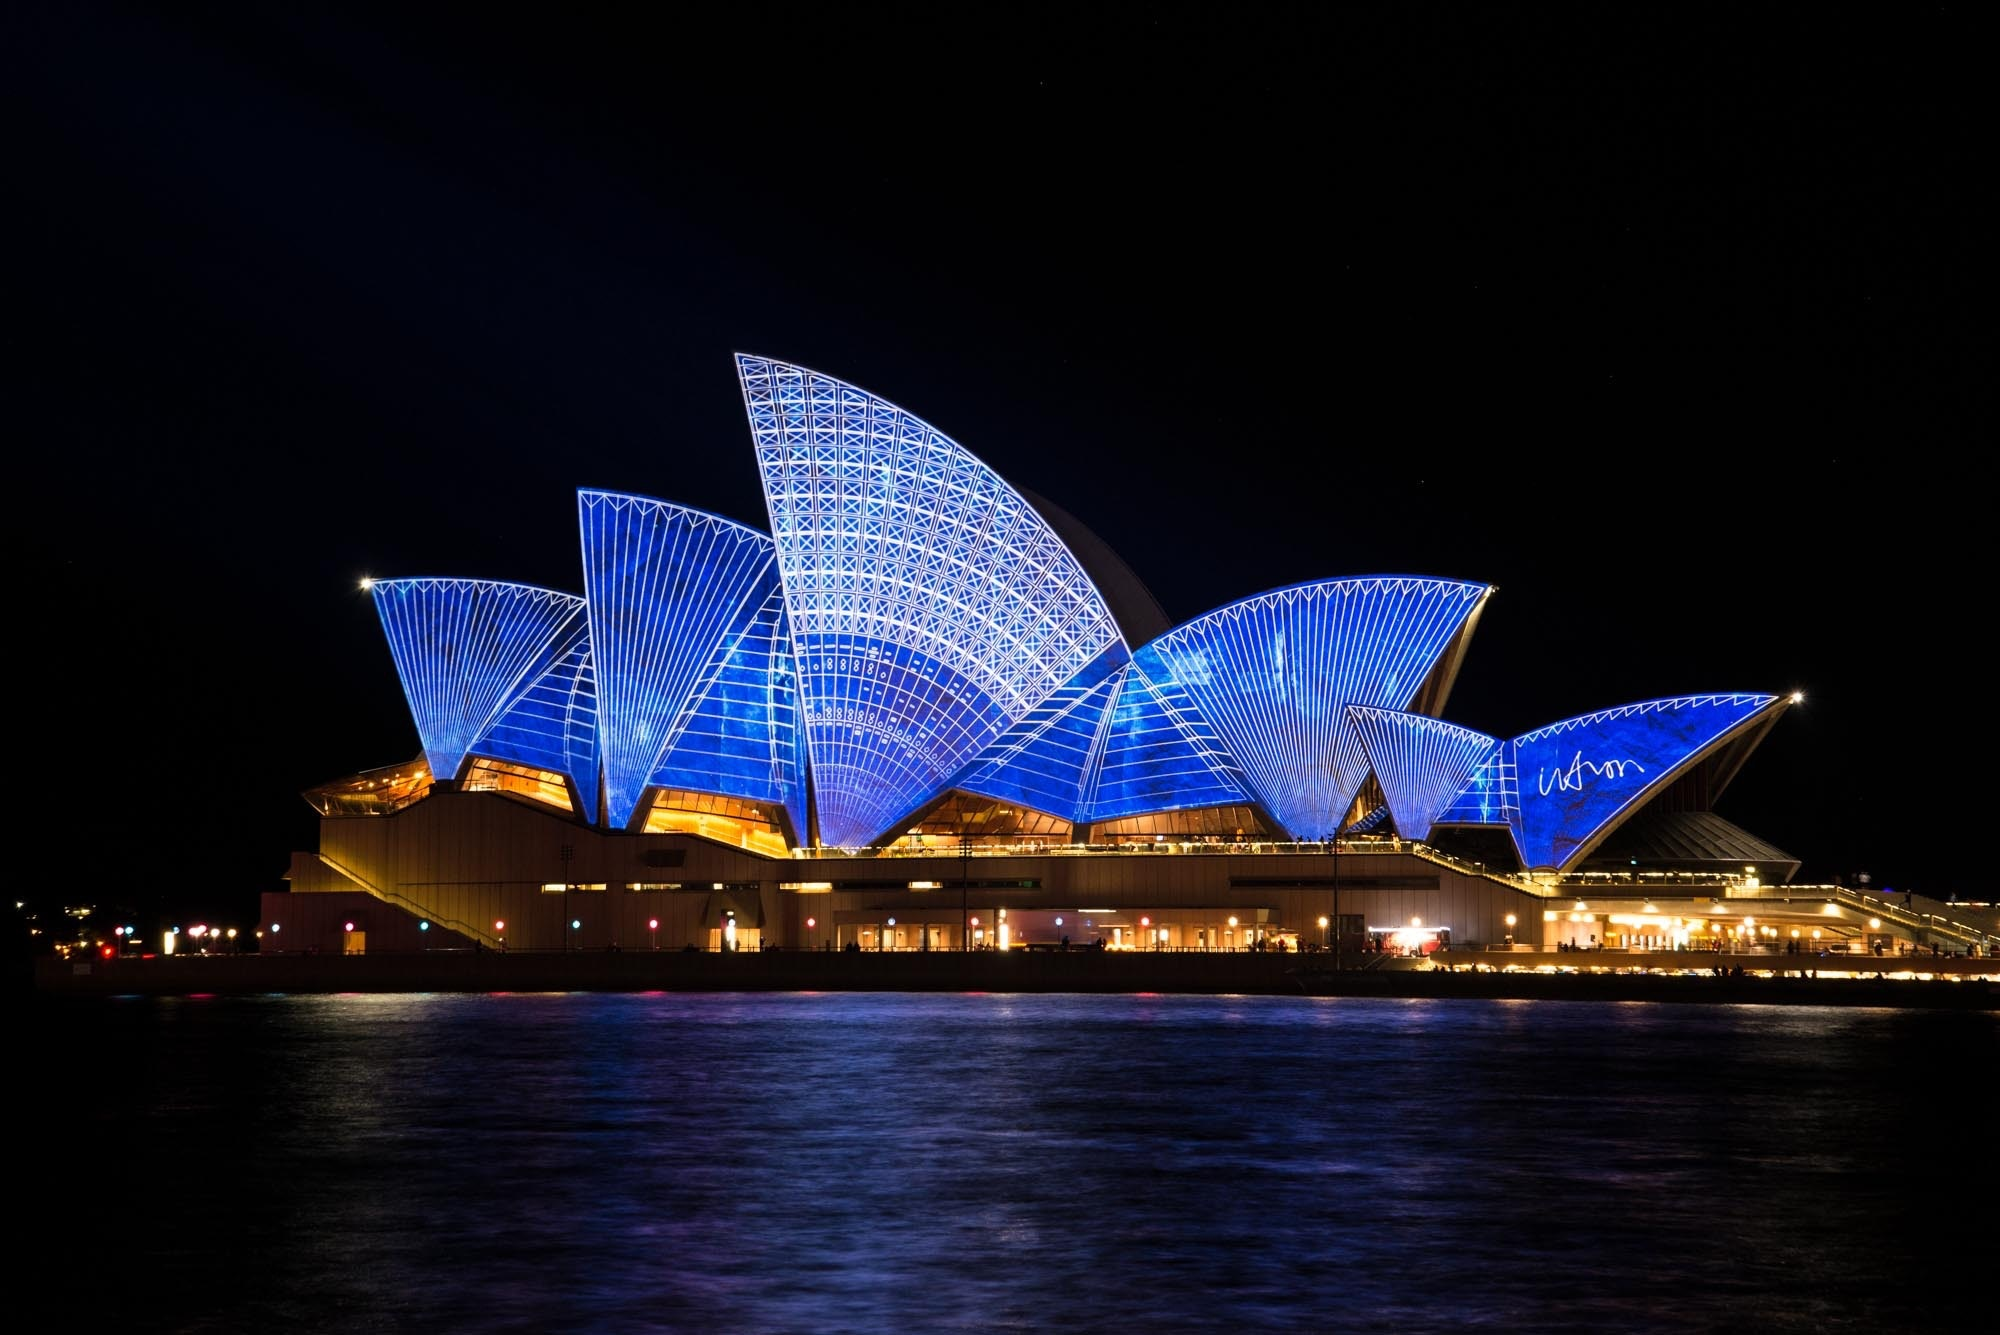 Princess' World Cruise from Sydney, Circle Pacific or Australia